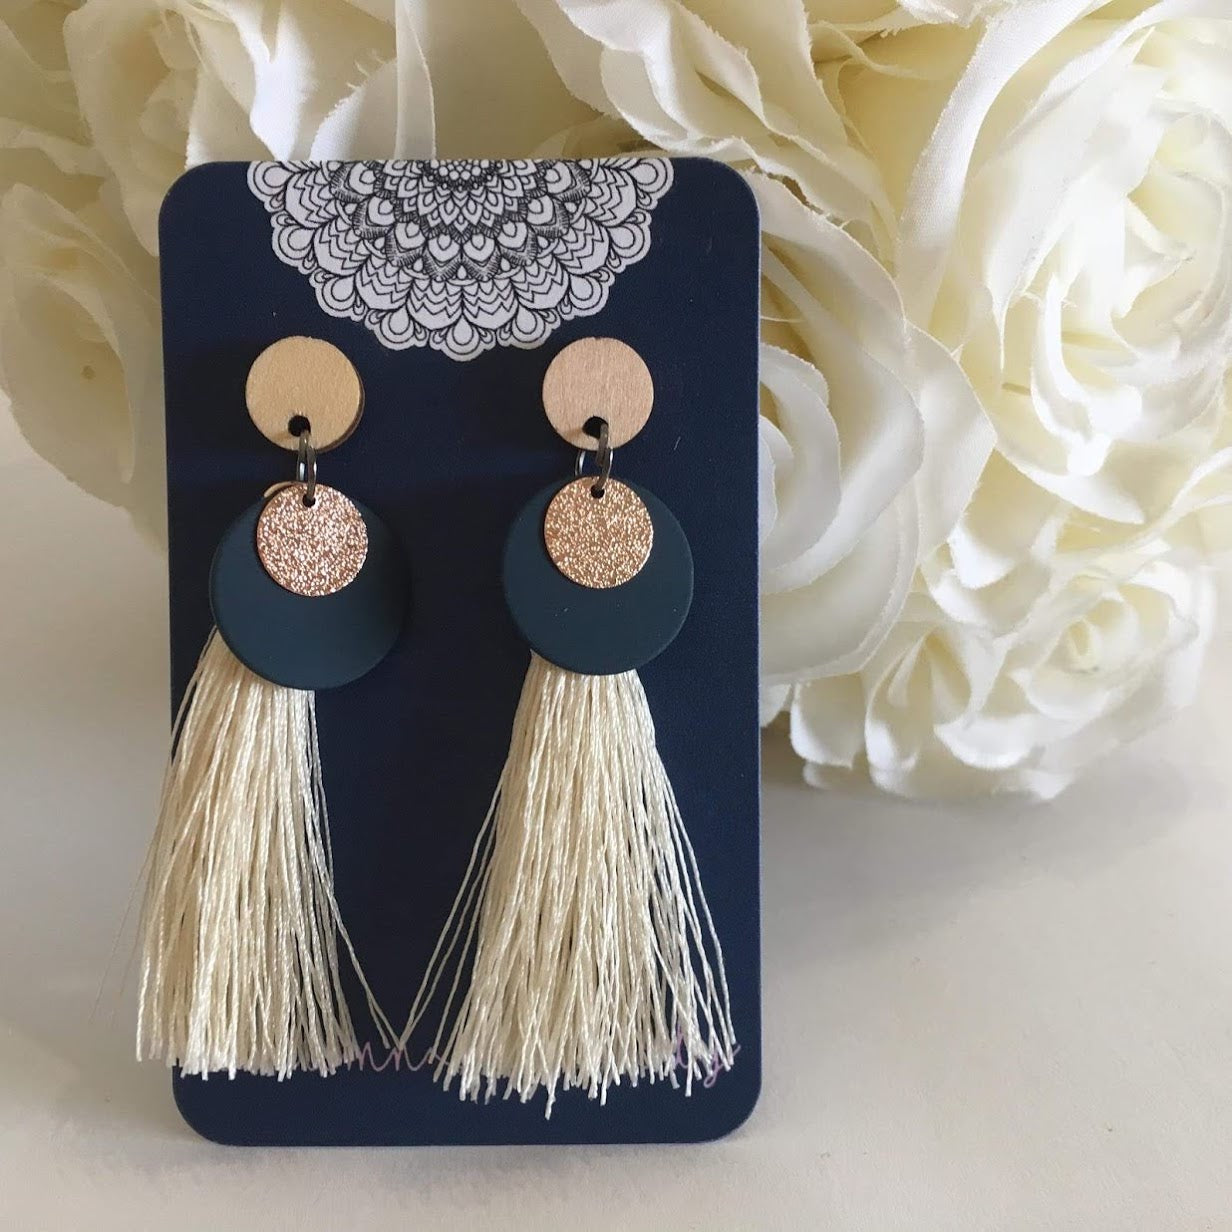 Tassel - Cream, Navy and Rose Gold